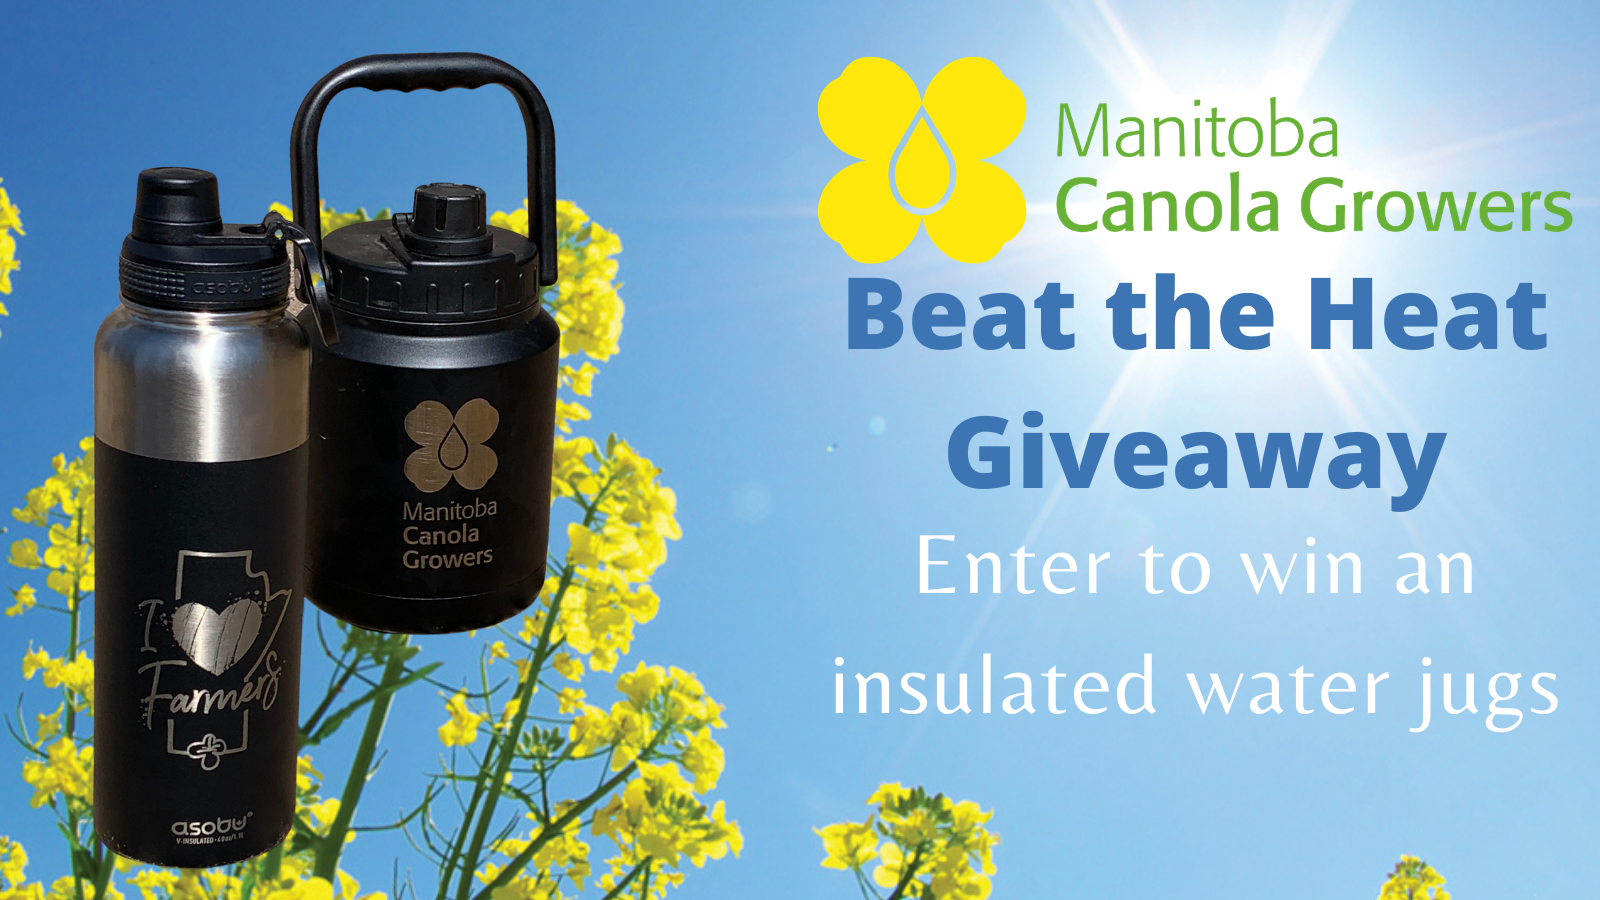 Contest to win an insulated water jug